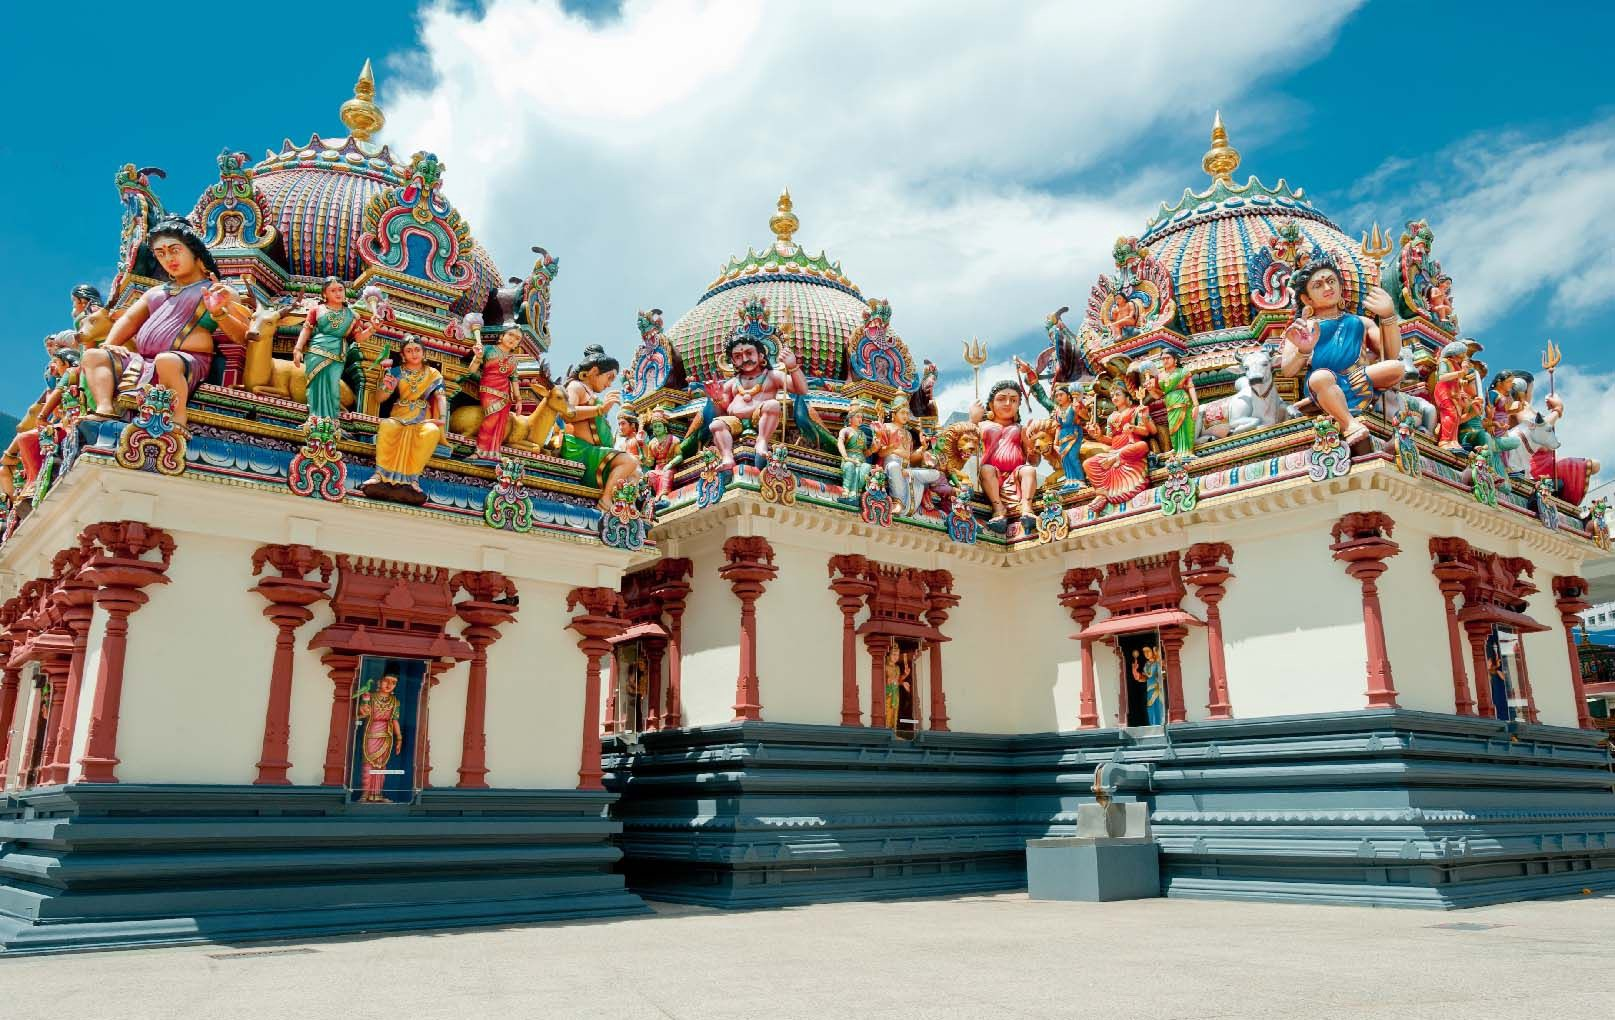 Pay a holy visit to Sri Mariamman Temple, Singapore